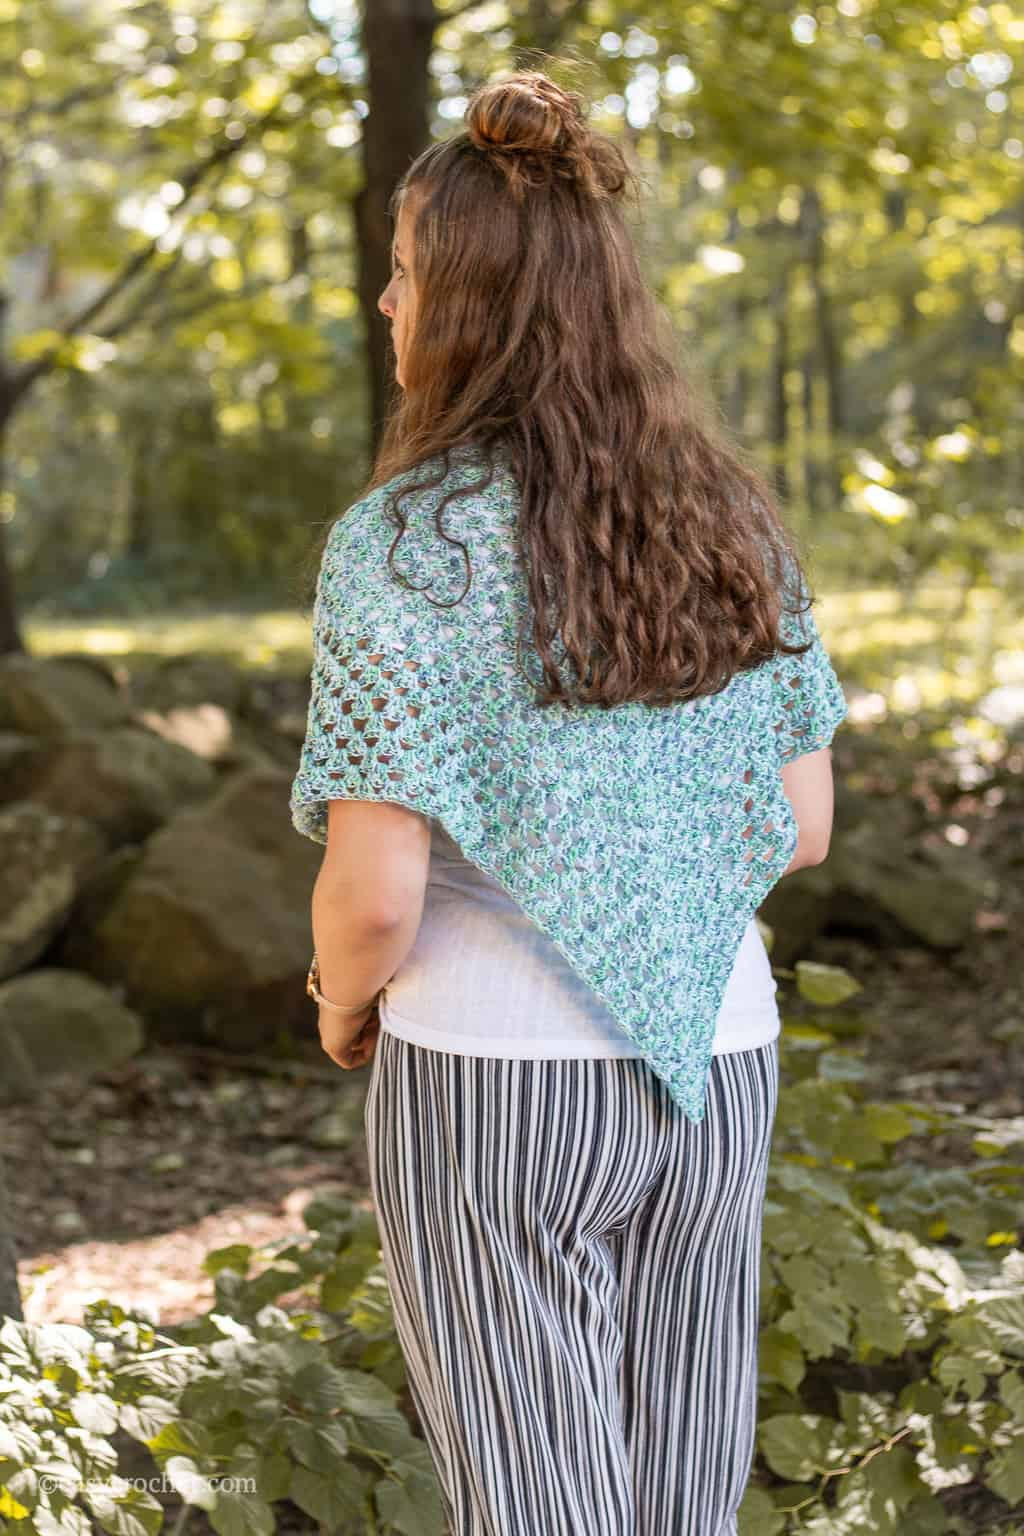 Crochet Shawl Pattern using superfine yarn